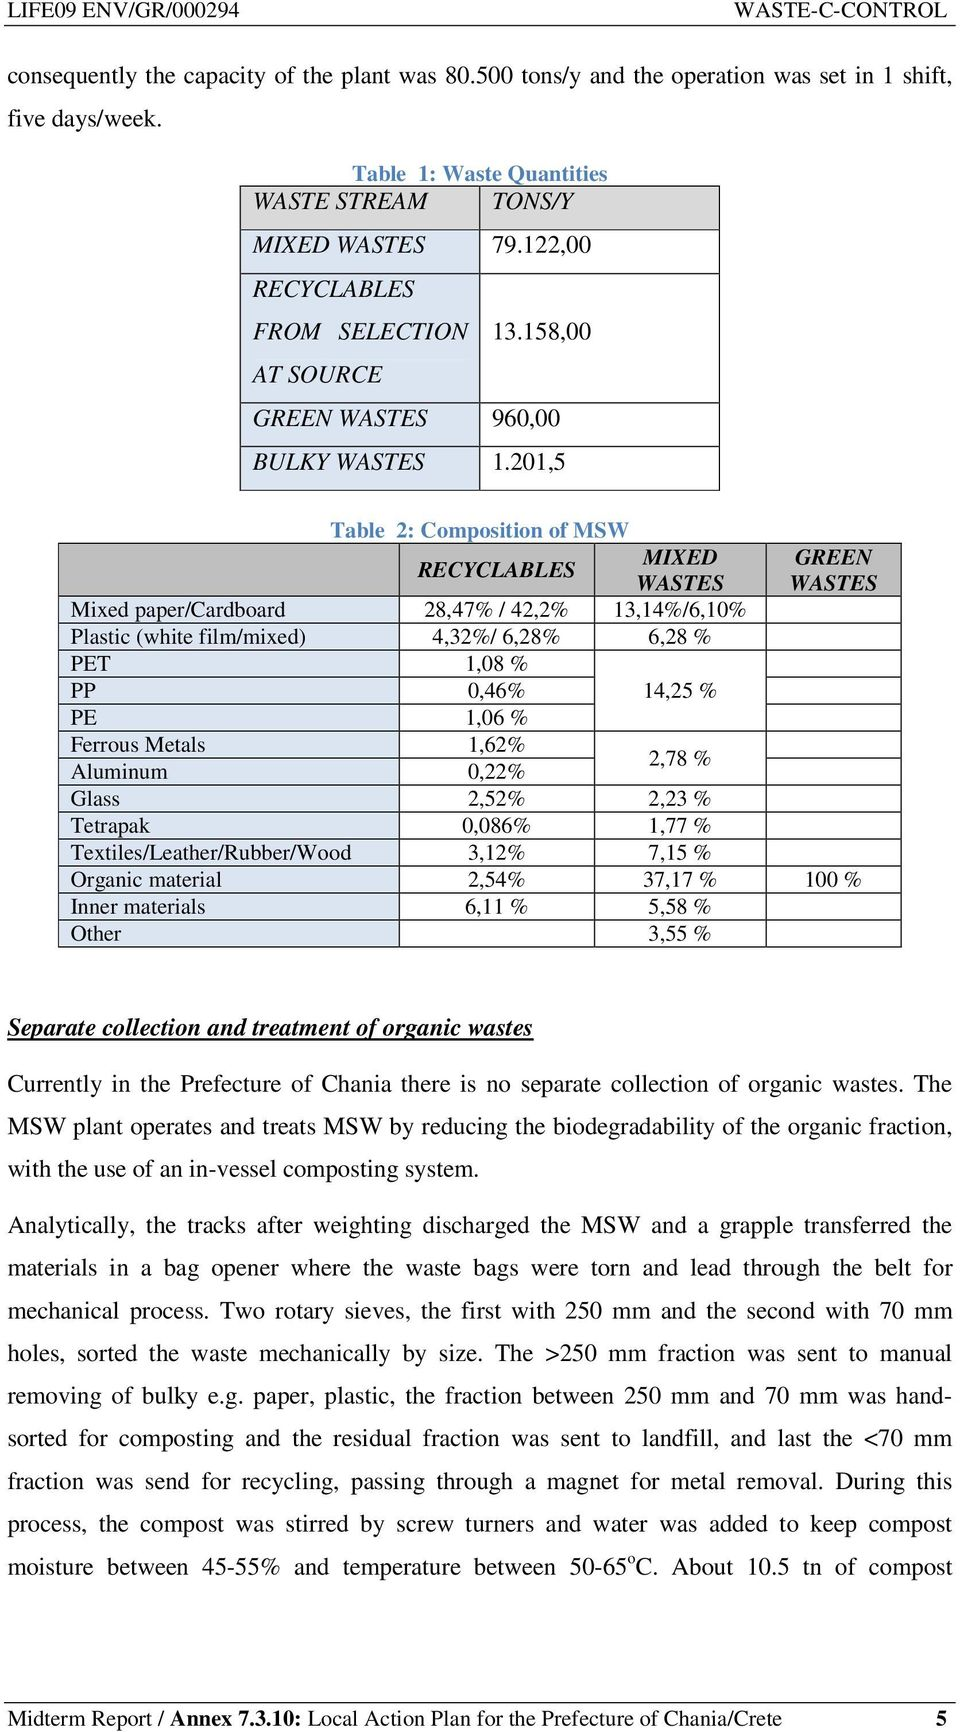 201,5 Table 2: Composition of MSW RECYCLABLES MIXED GREEN WASTES WASTES Mixed paper/cardboard 28,47% / 42,2% 13,14%/6,10% Plastic (white film/mixed) 4,32%/ 6,28% 6,28 % PET 1,08 % PP 0,46% 14,25 % PE